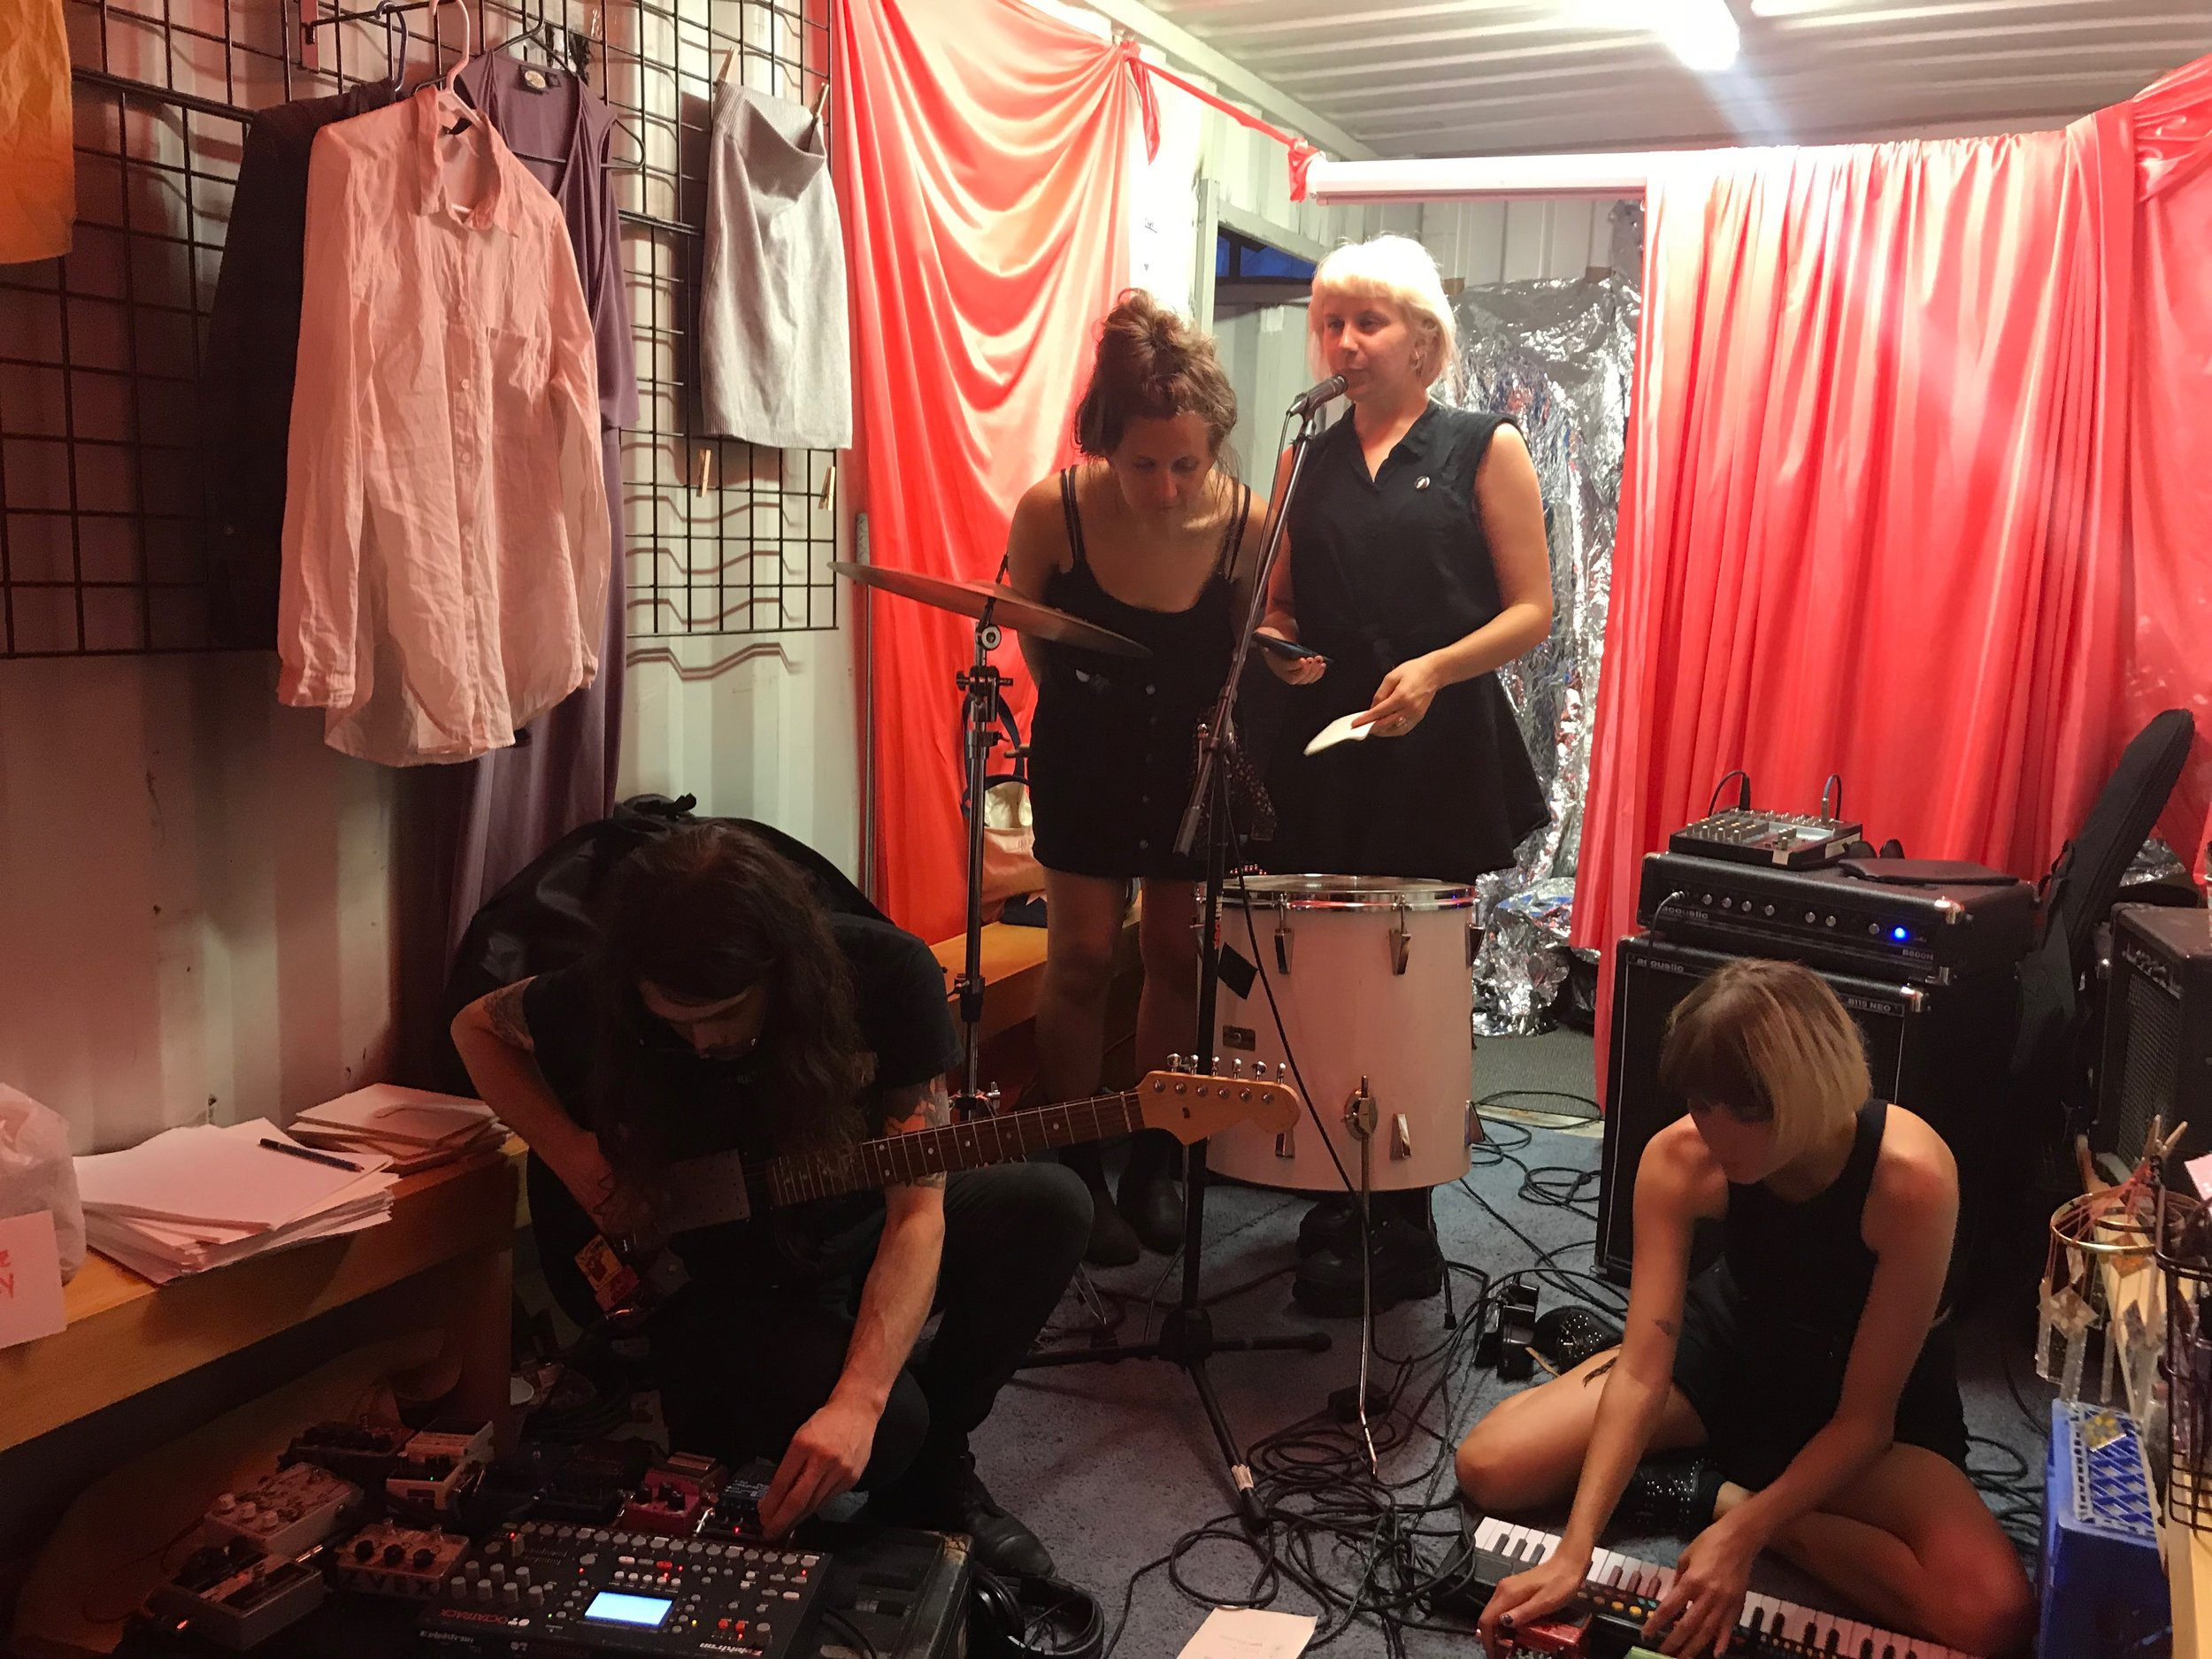 Abandon performing at THE 25 HOUR FREE STORE @ 7 Belvidere on July 1, 2018